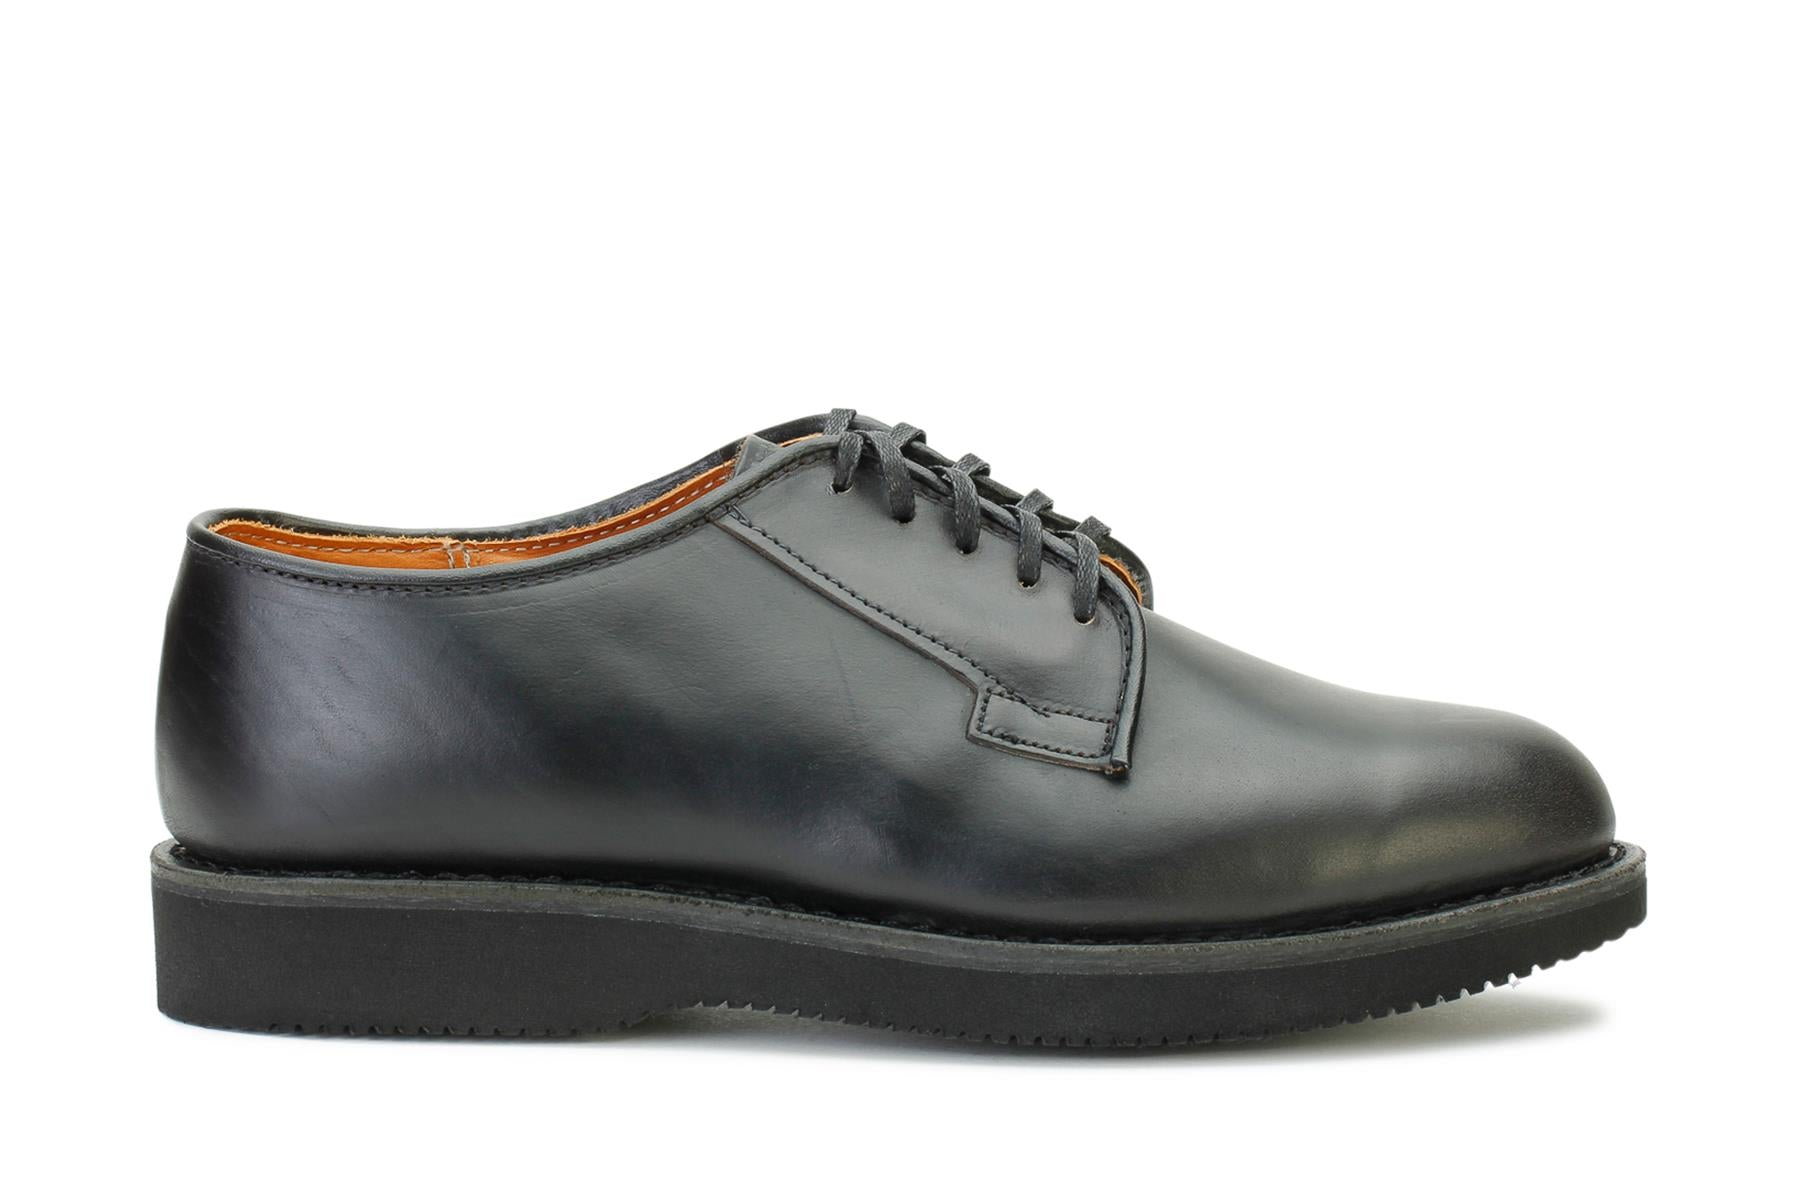 wolverine-mens-oxford-shoes-1000-mile-andrew-black-w40201-main